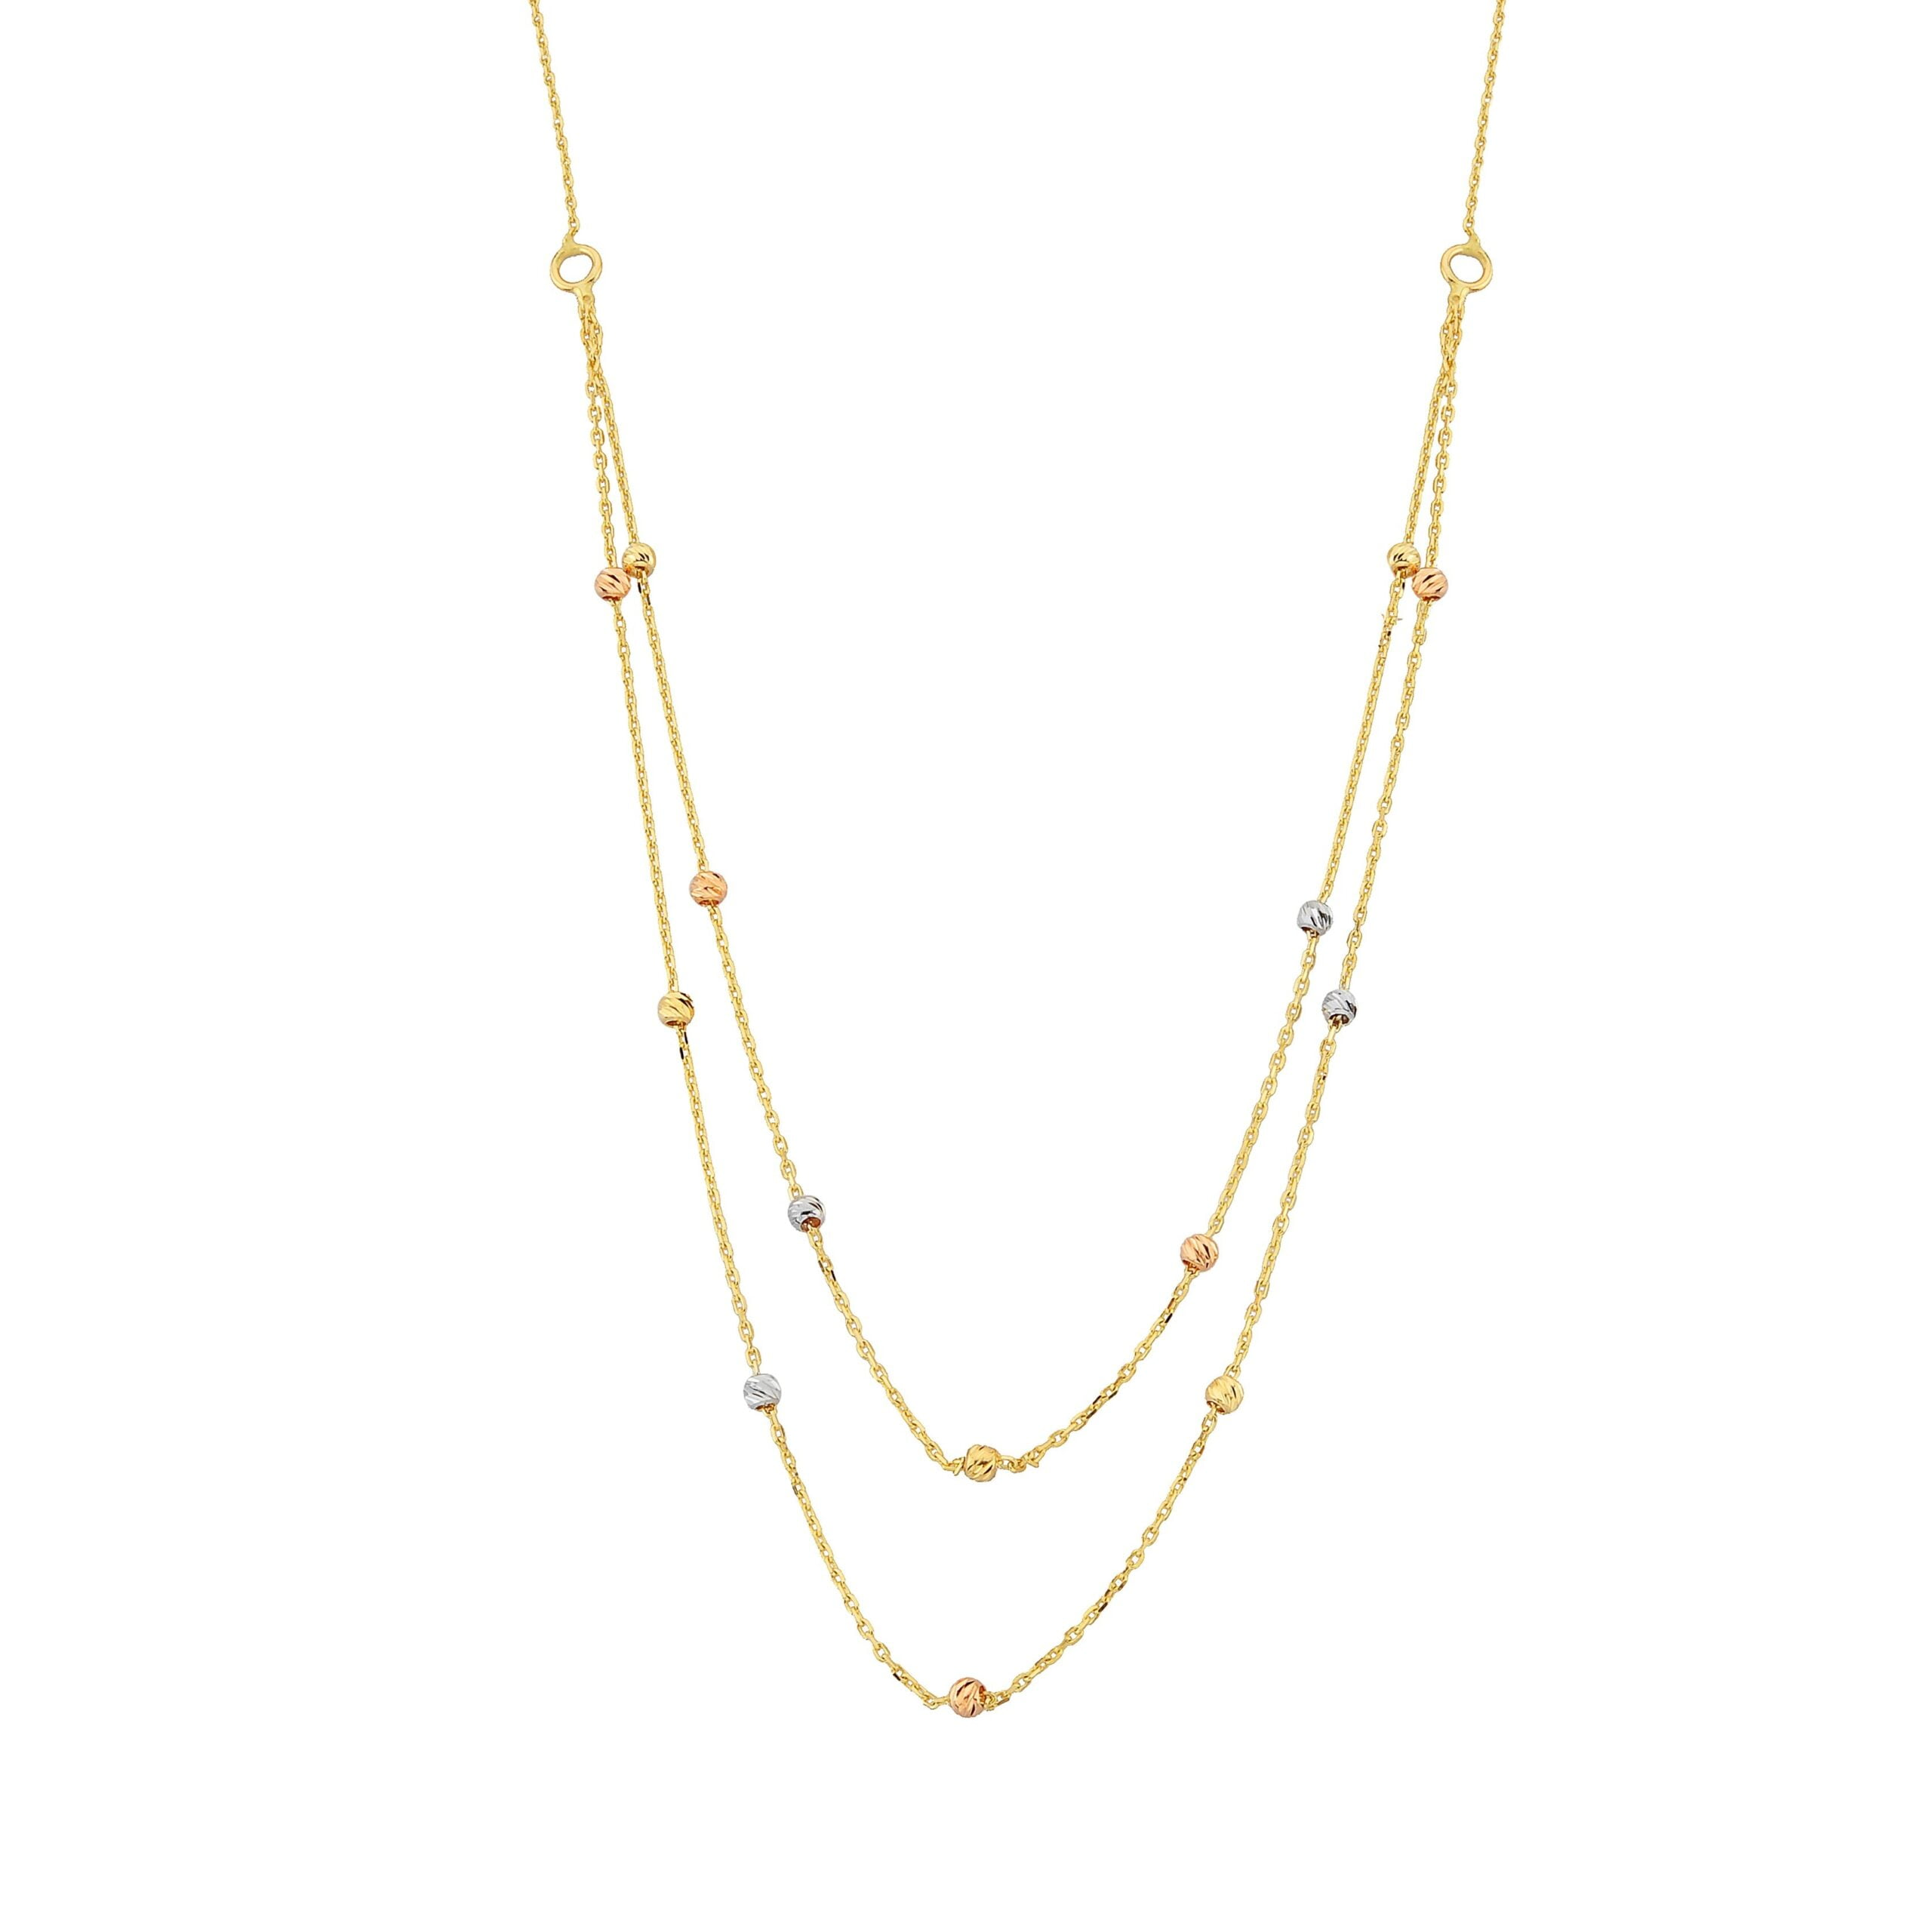 Two Rows Chain Beaded Italian Balls Charm Dainty Delicate Necklace for Women 14K Real Solid Gold Birthday Christmas Mother's Day Gift Jewelry ball layered double